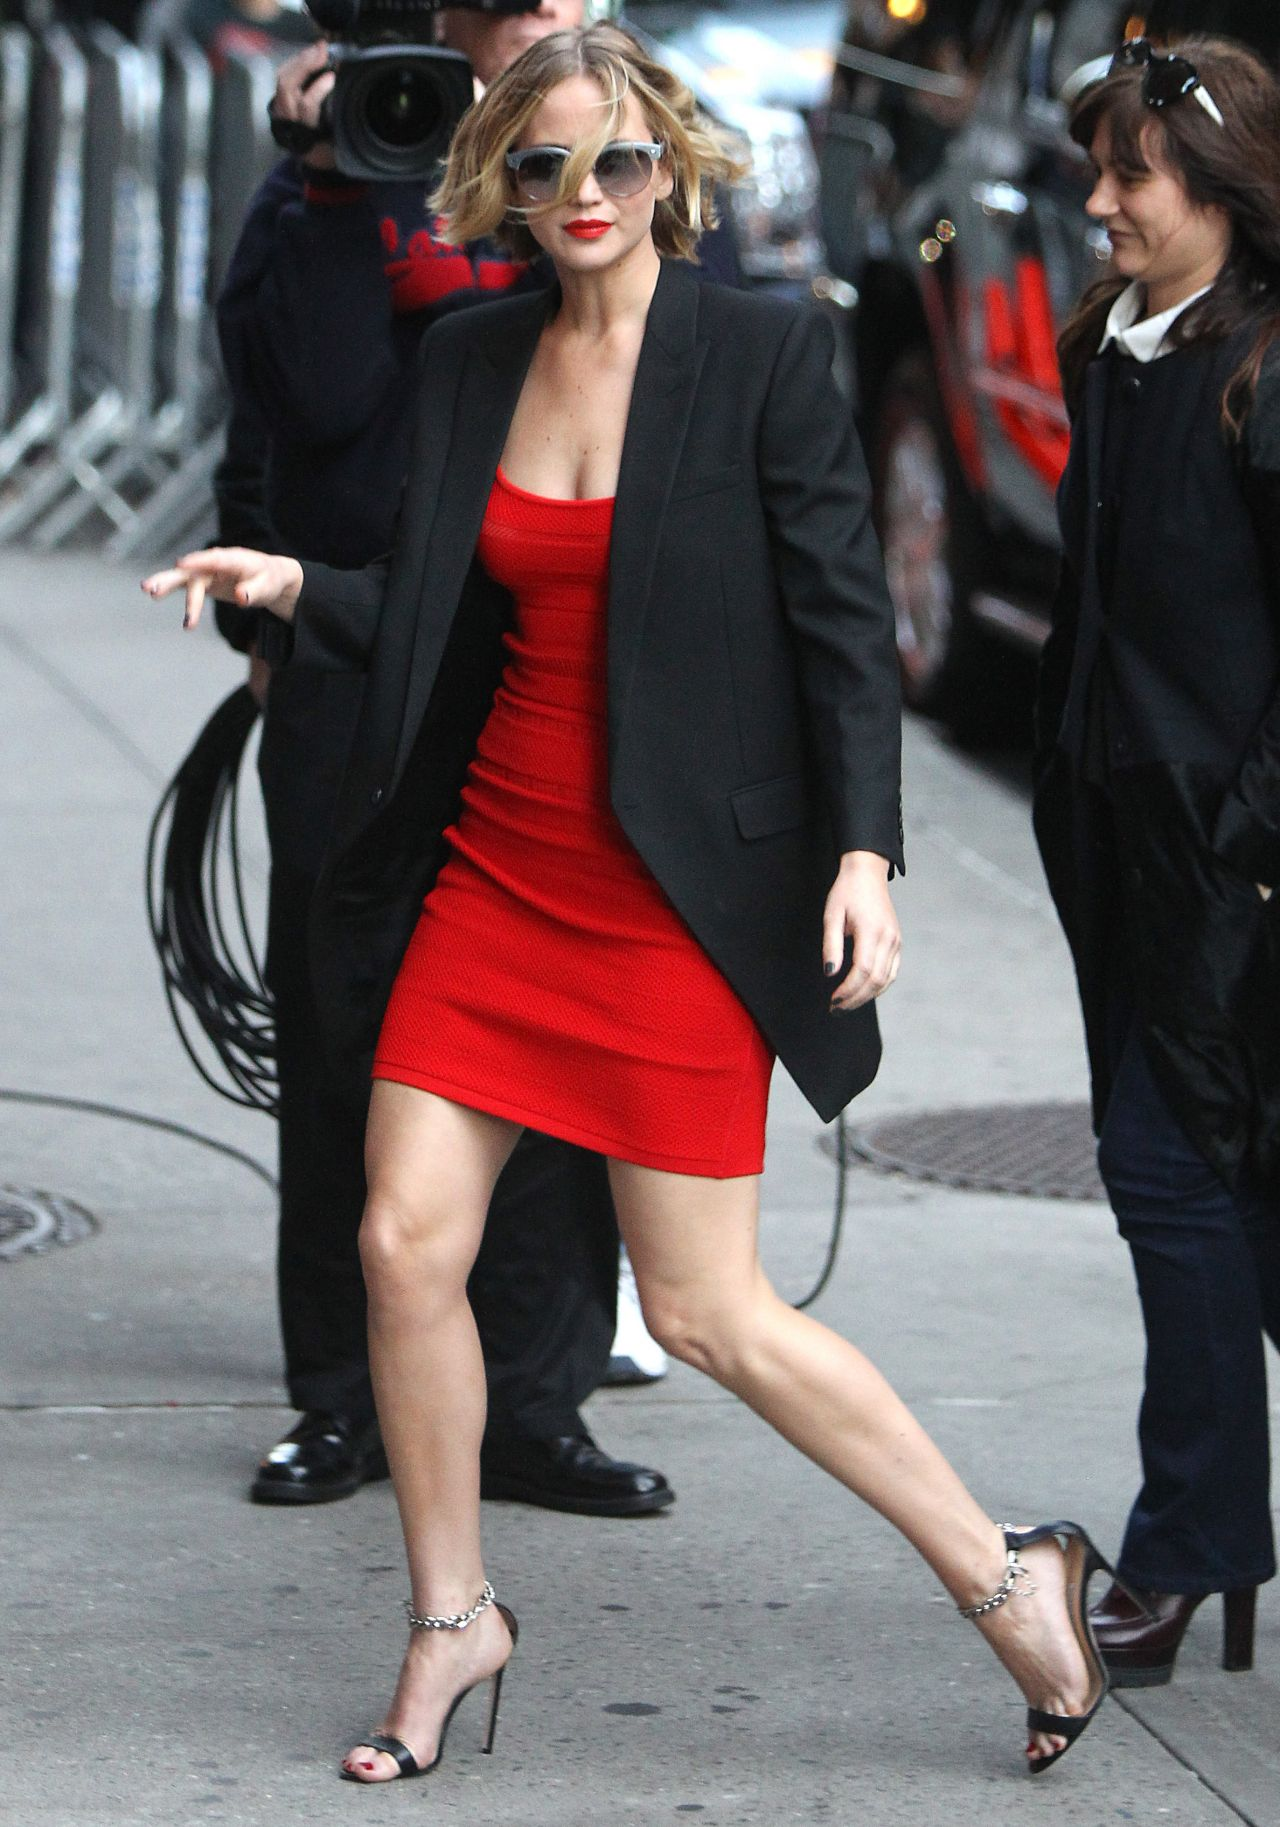 http://celebmafia.com/wp-content/uploads/2014/11/jennifer-lawrence-arriving-to-appear-on-late-show-with-david-letterman-in-new-york-city-nov.-2014_7.jpg